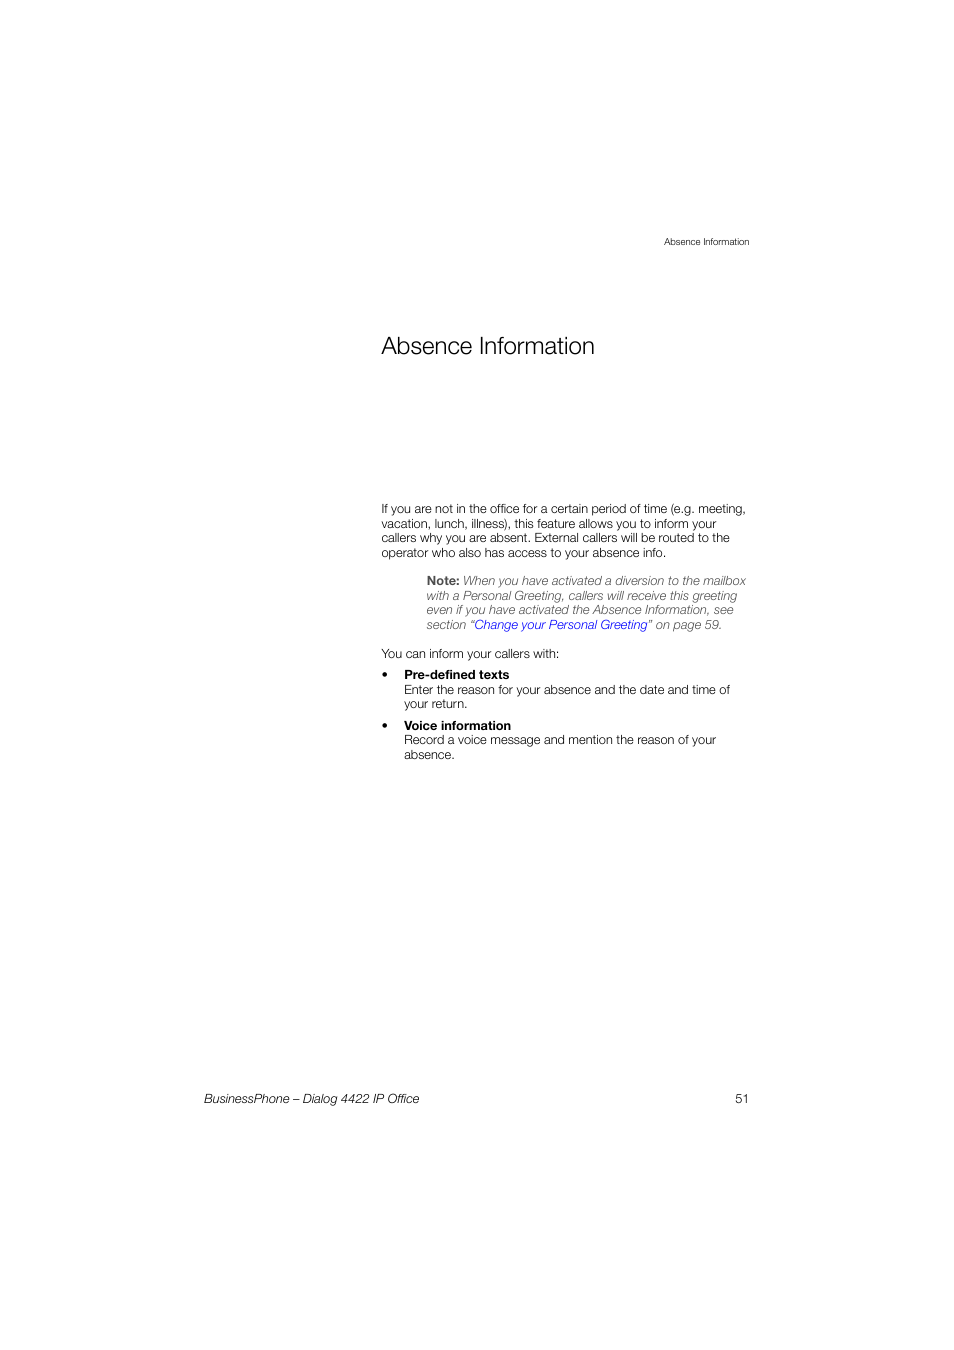 Absence Information Aastra 4422 Ip Office For Businessphone User